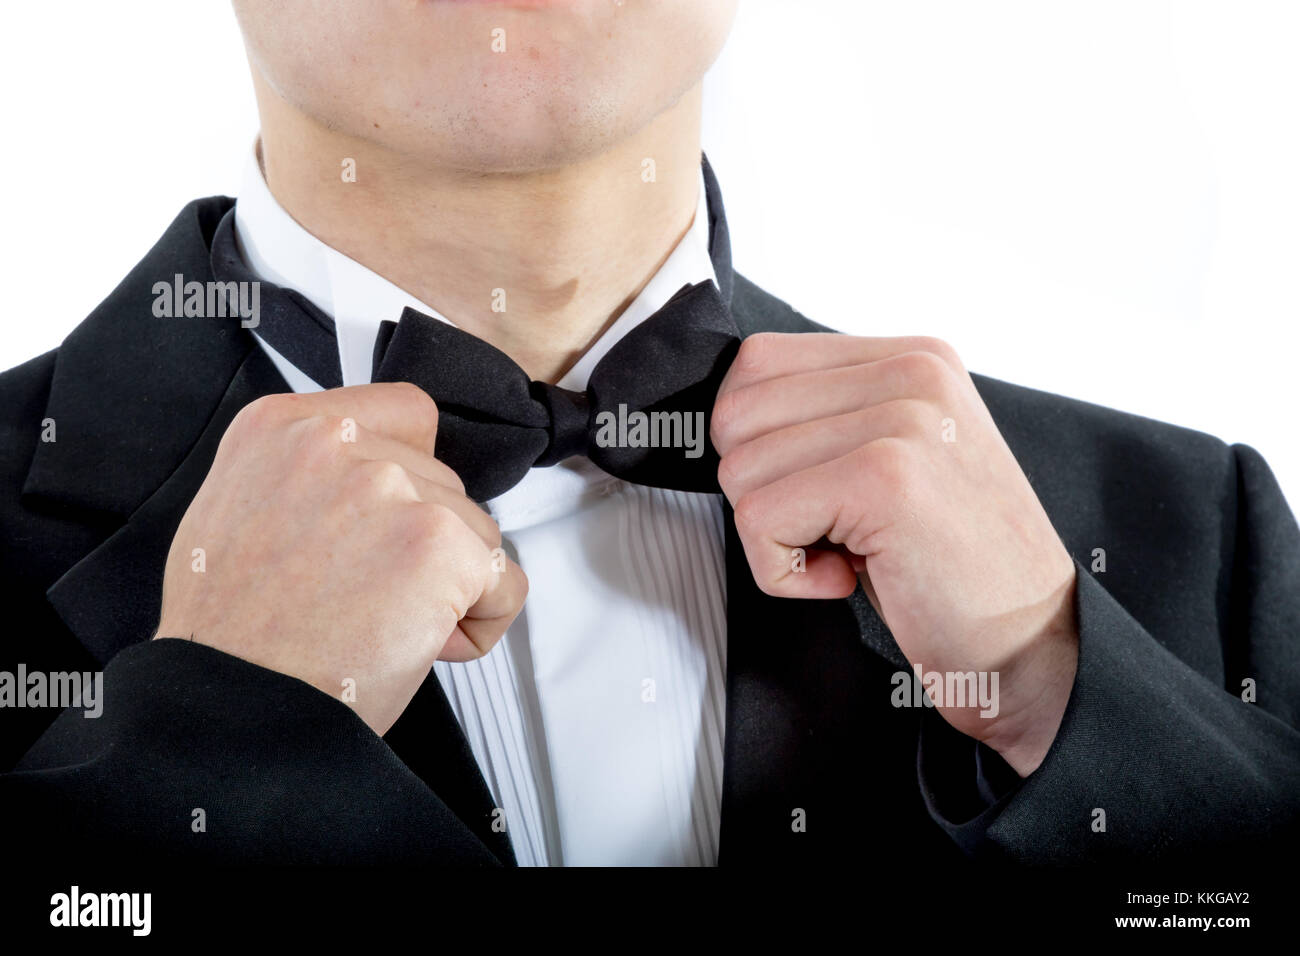 18 year old wearing a tuxedo adjusting his bowtie isolated on a white background - Stock Image